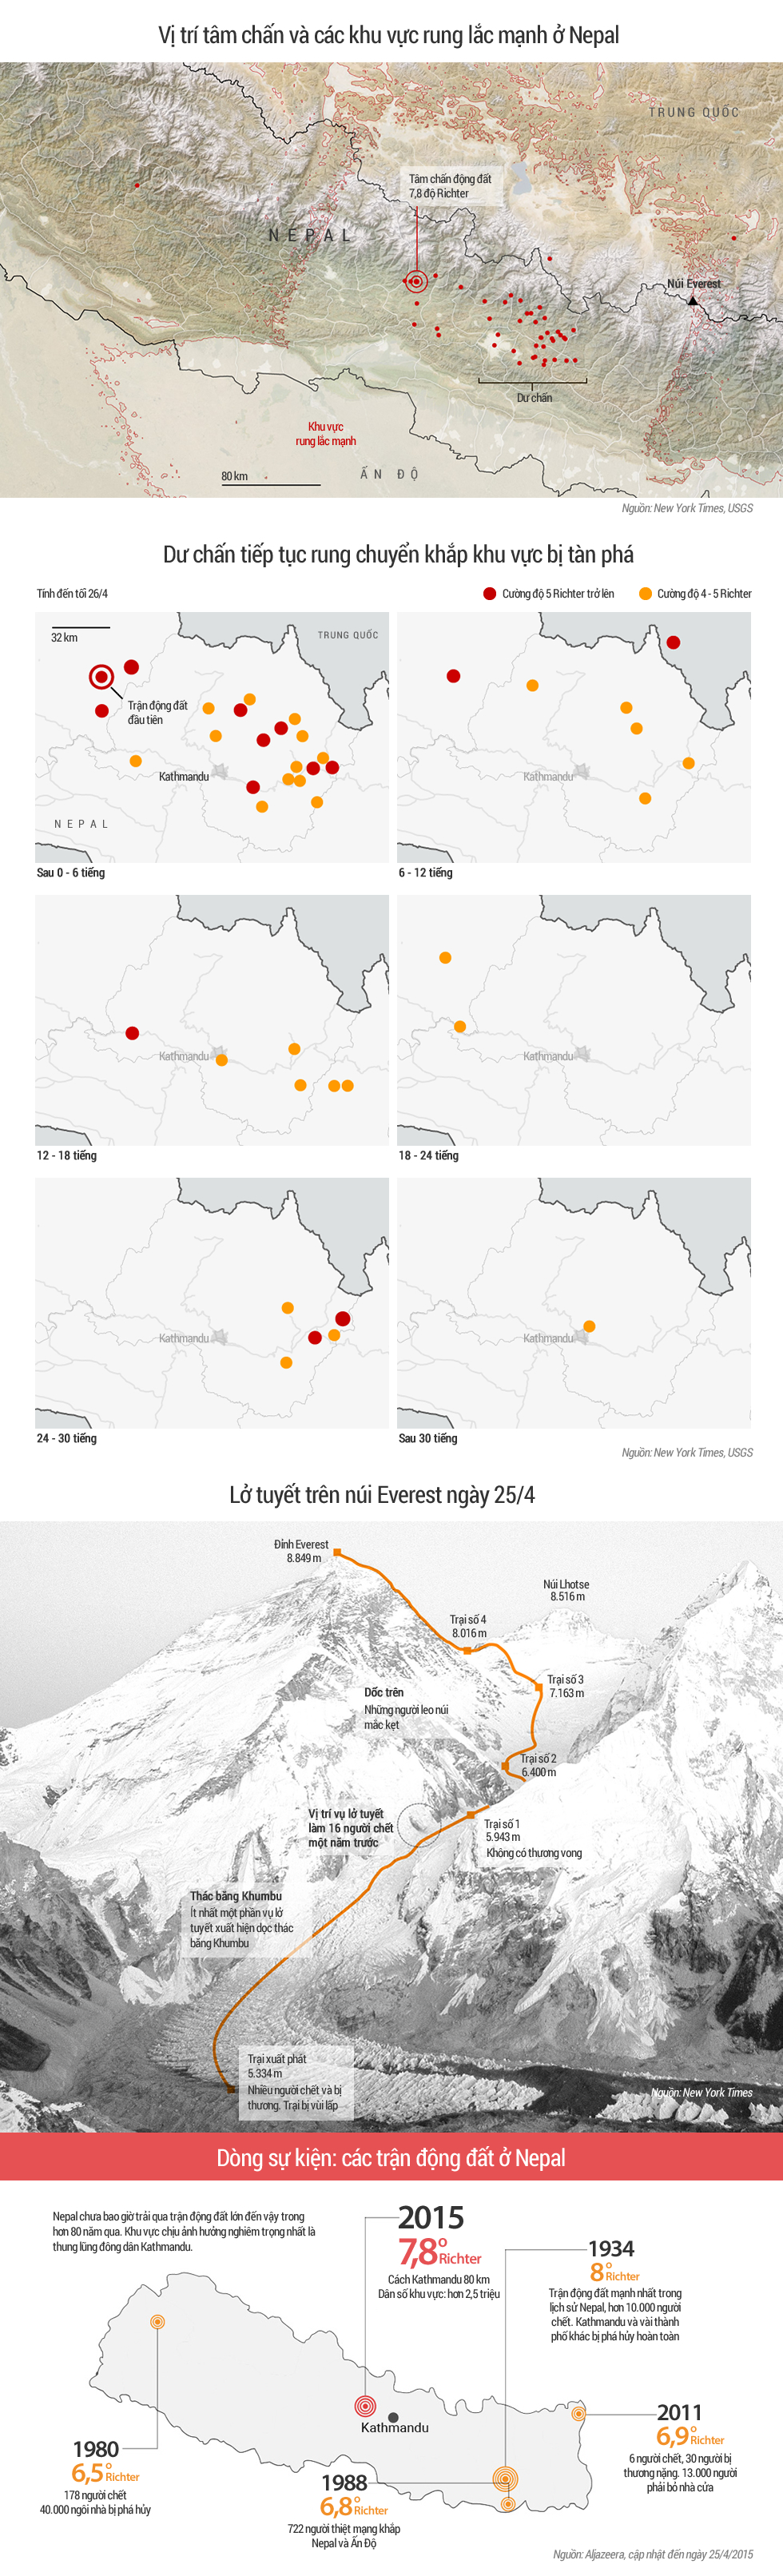 Nepal-earthquake-infographic-1430131825